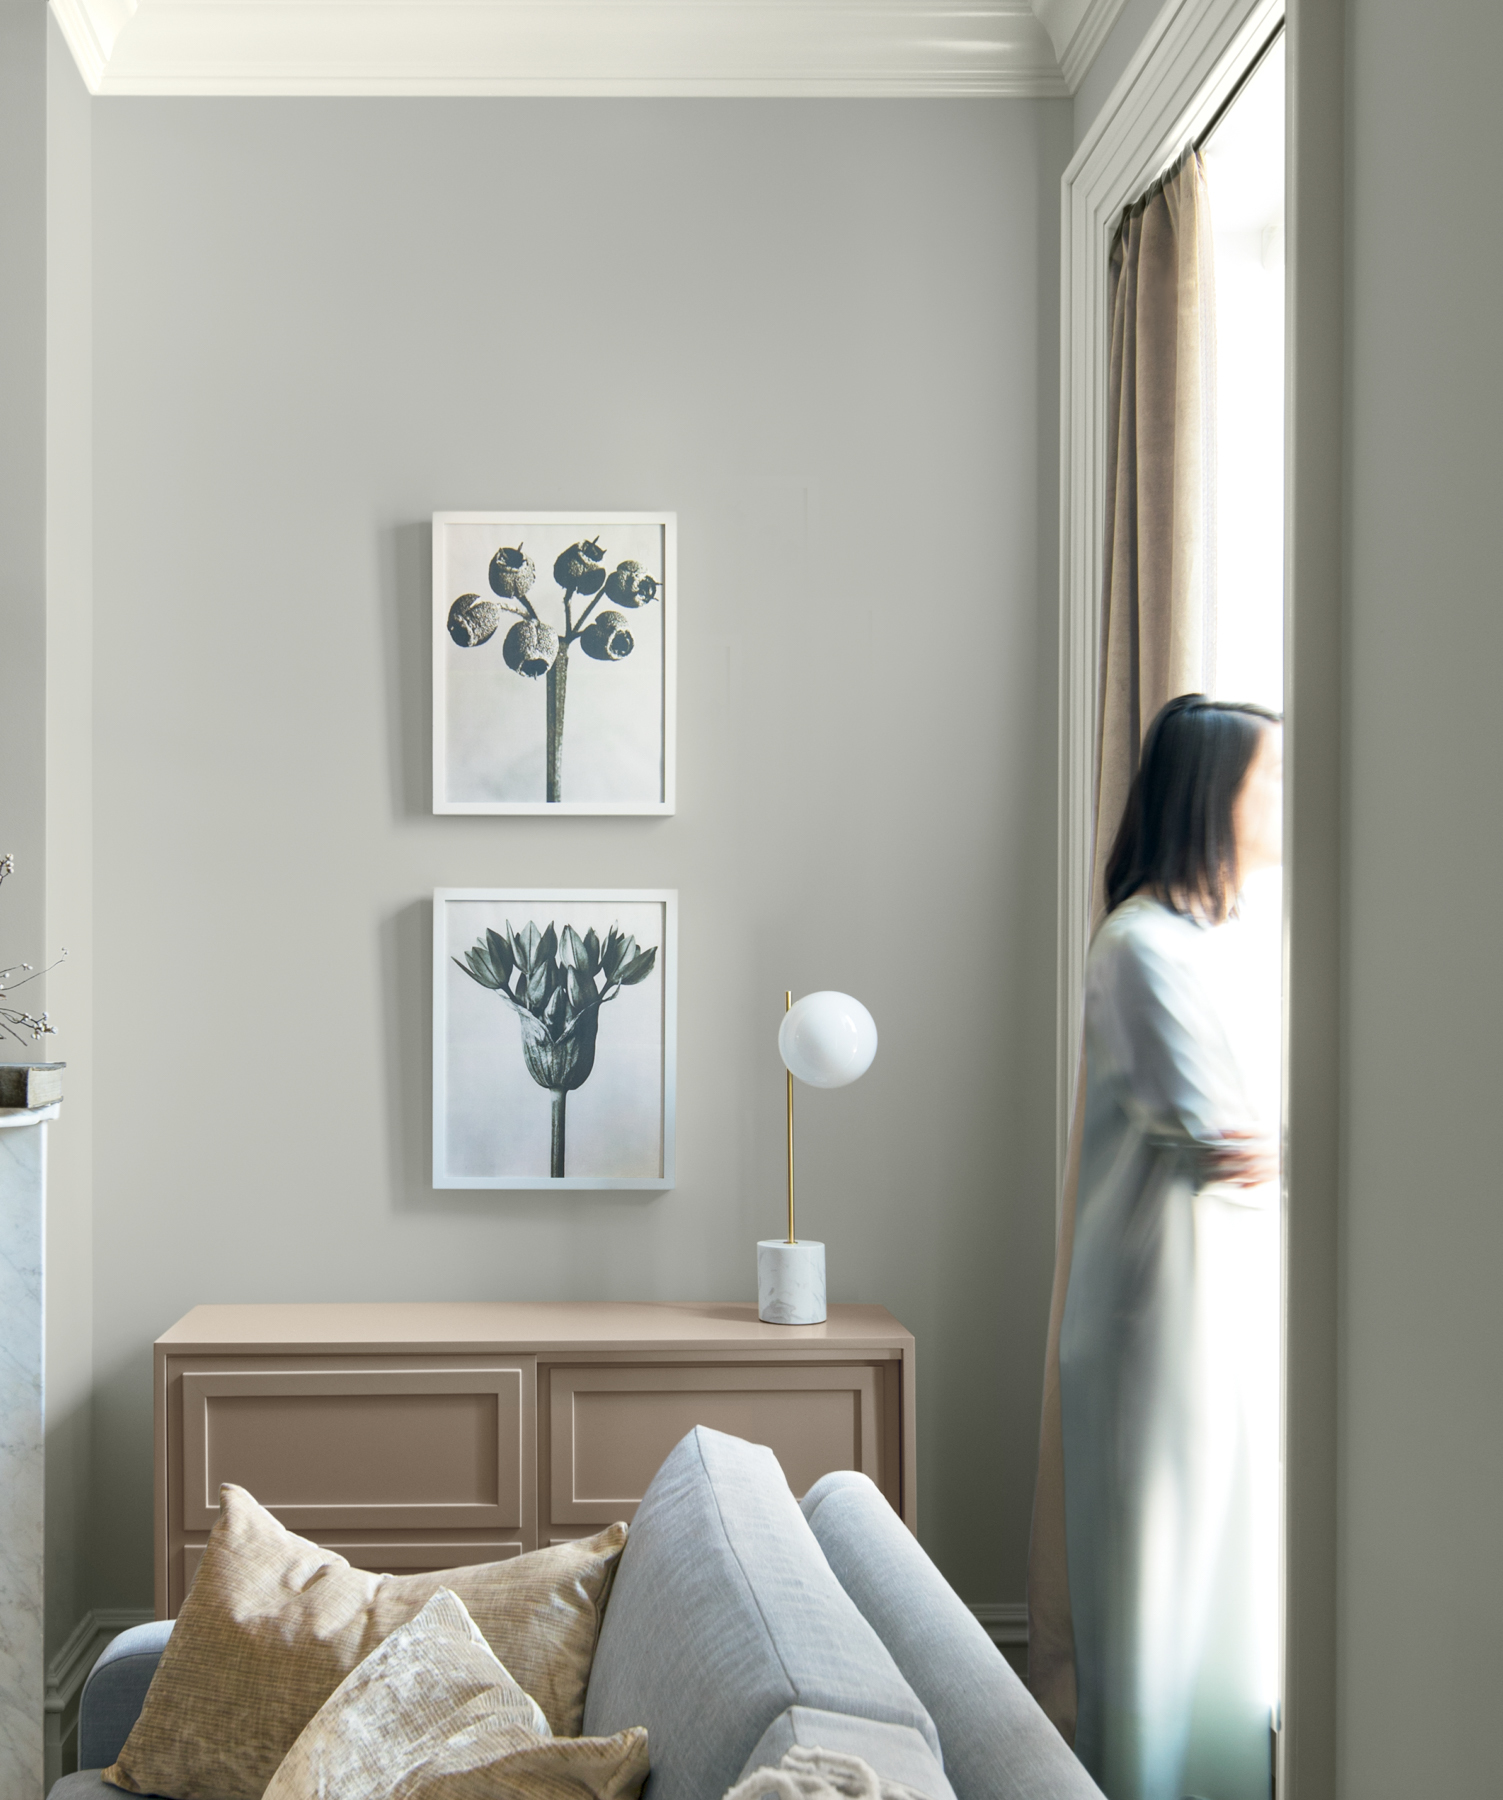 Benjamin Moore Names Metropolitan Af 690 Its Color Of The Year 2019 Business Wire